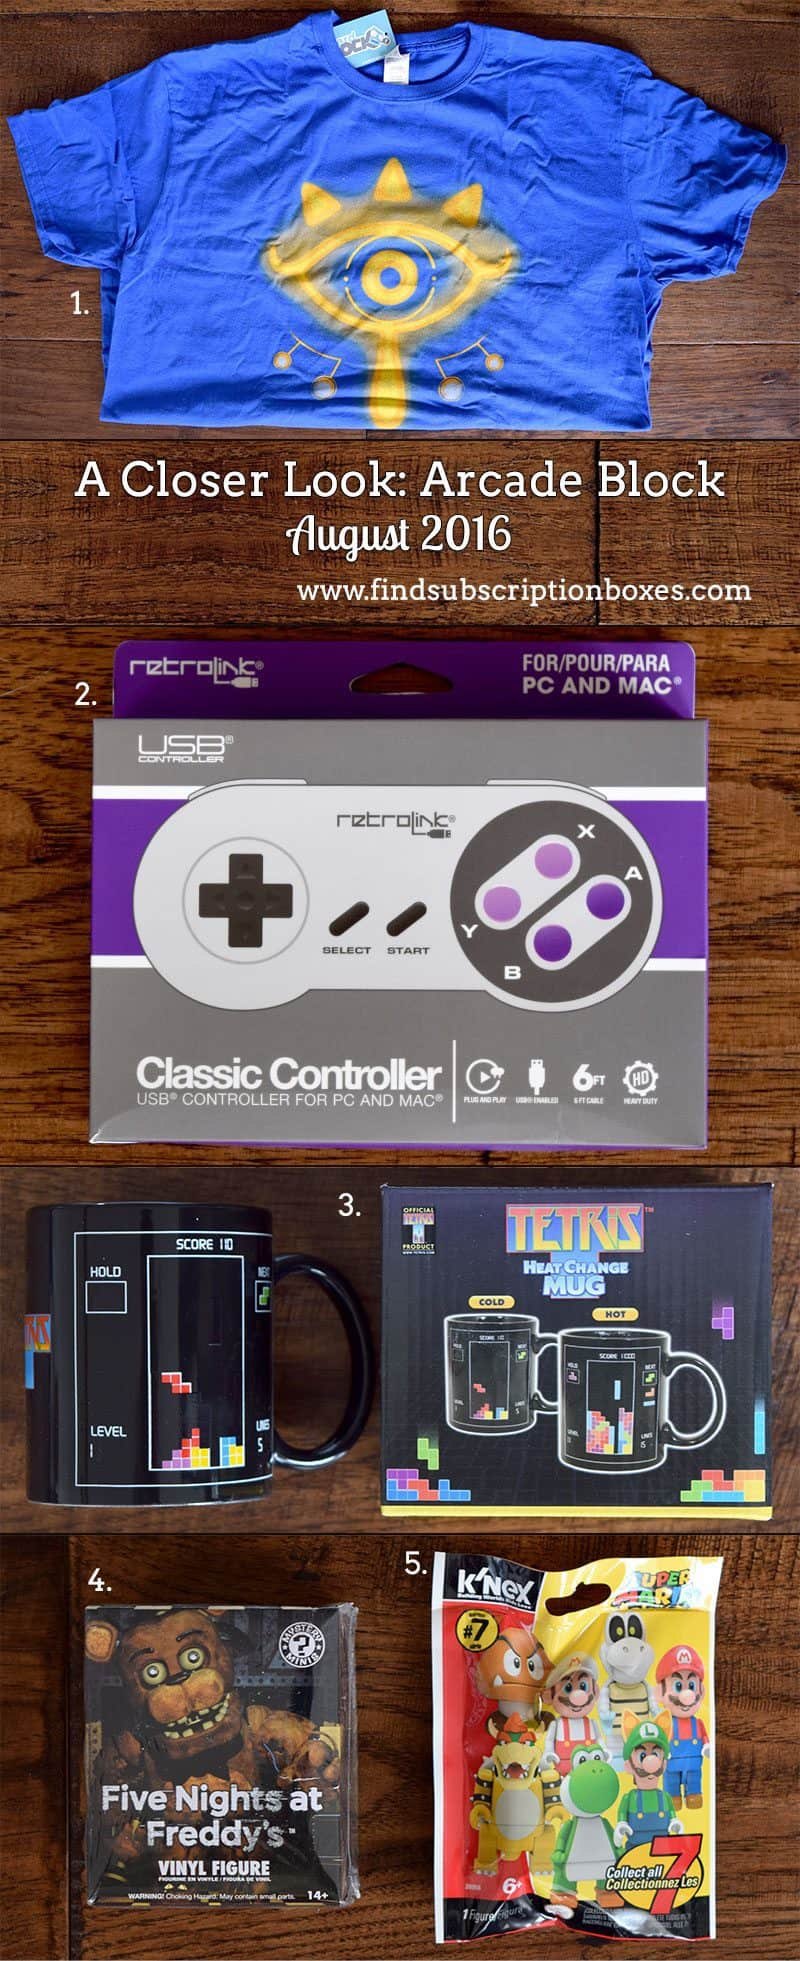 August 2016 Arcade Block Review - Inside the Box